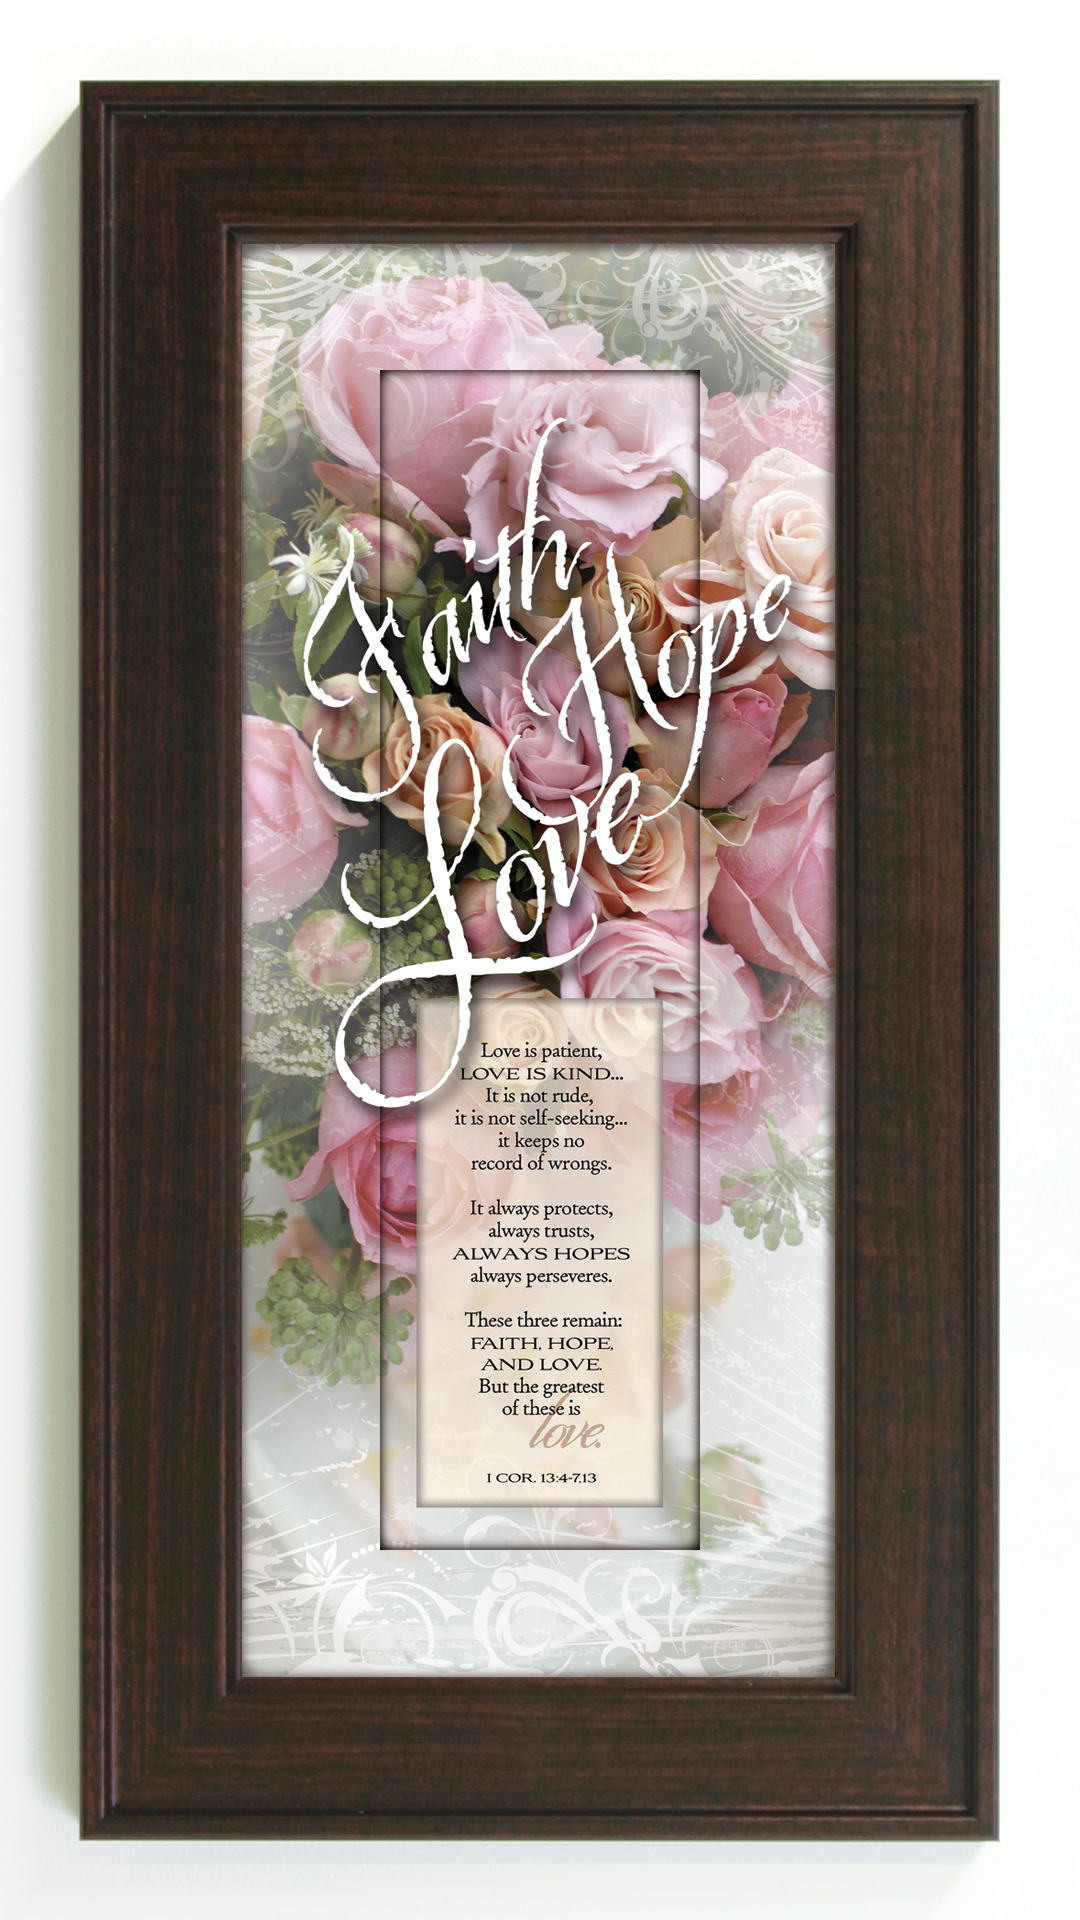 Faith, Hope, Love Framed Print framed picture, inspirational message, home decor, wall decor, framed art, words of grace, 3060